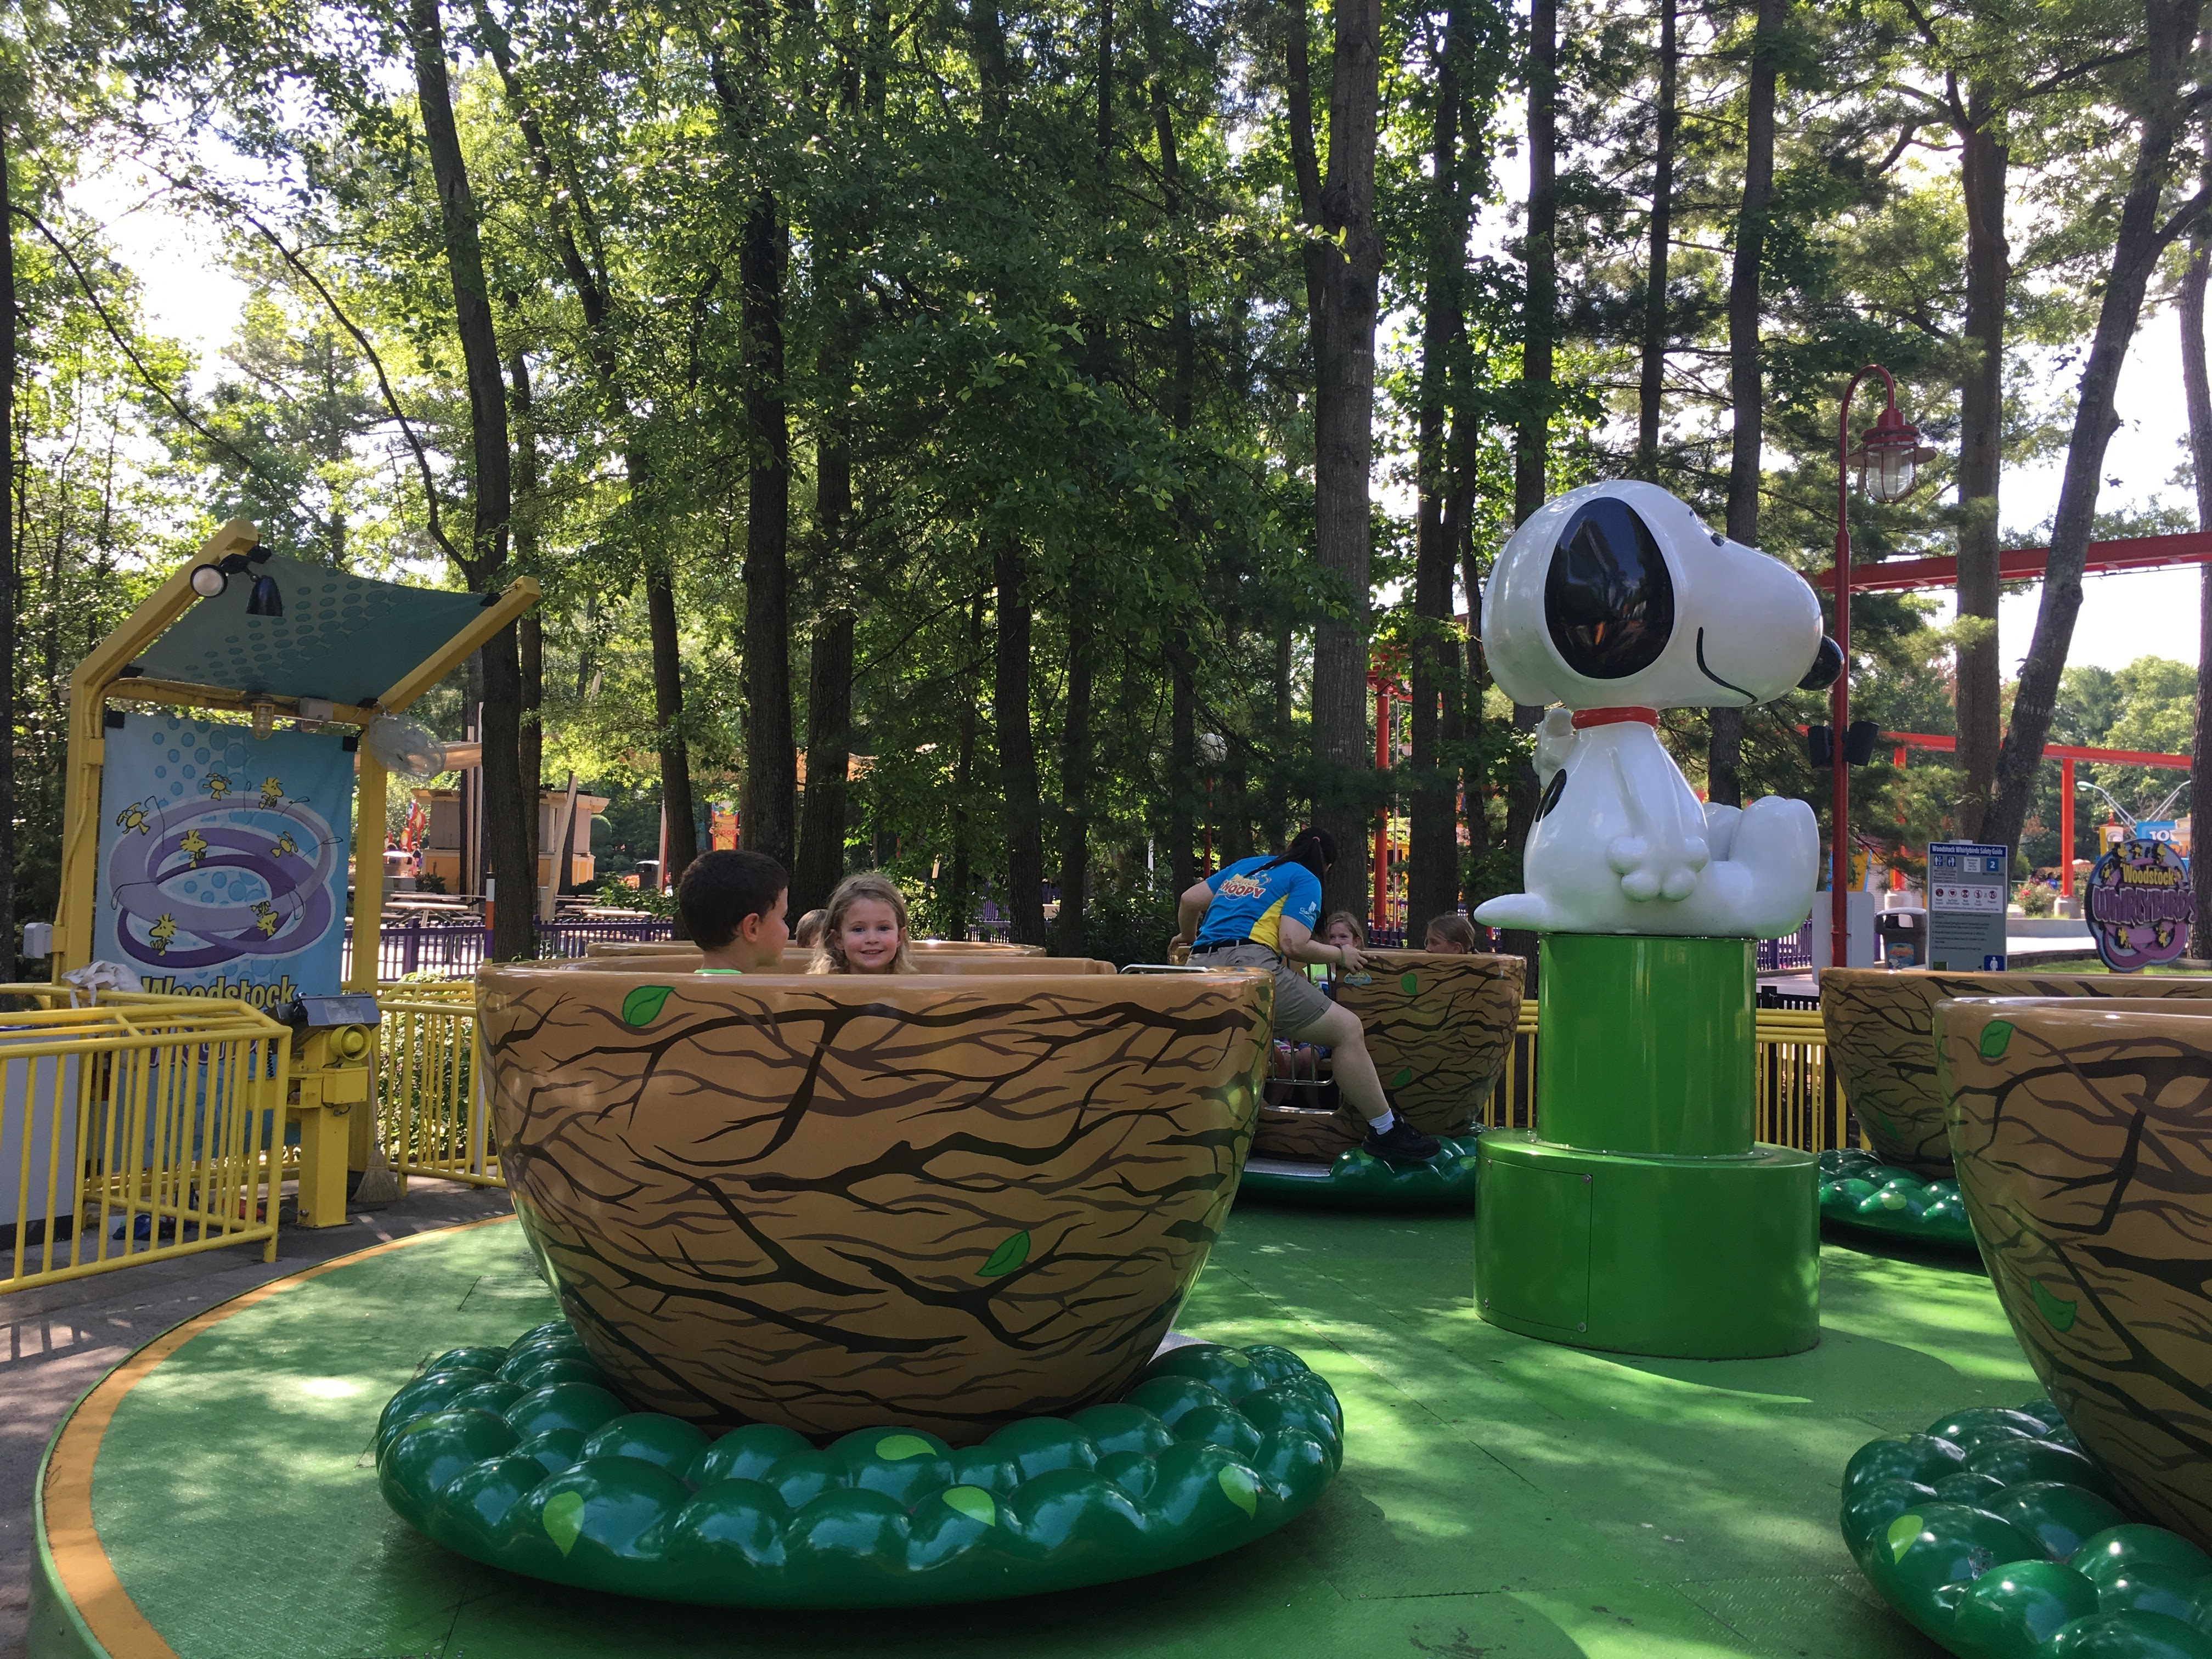 Kings dominion discount coupons - Woodstock Whirlybirds Kings Dominion Teacup Birdsnest Ride For Kids